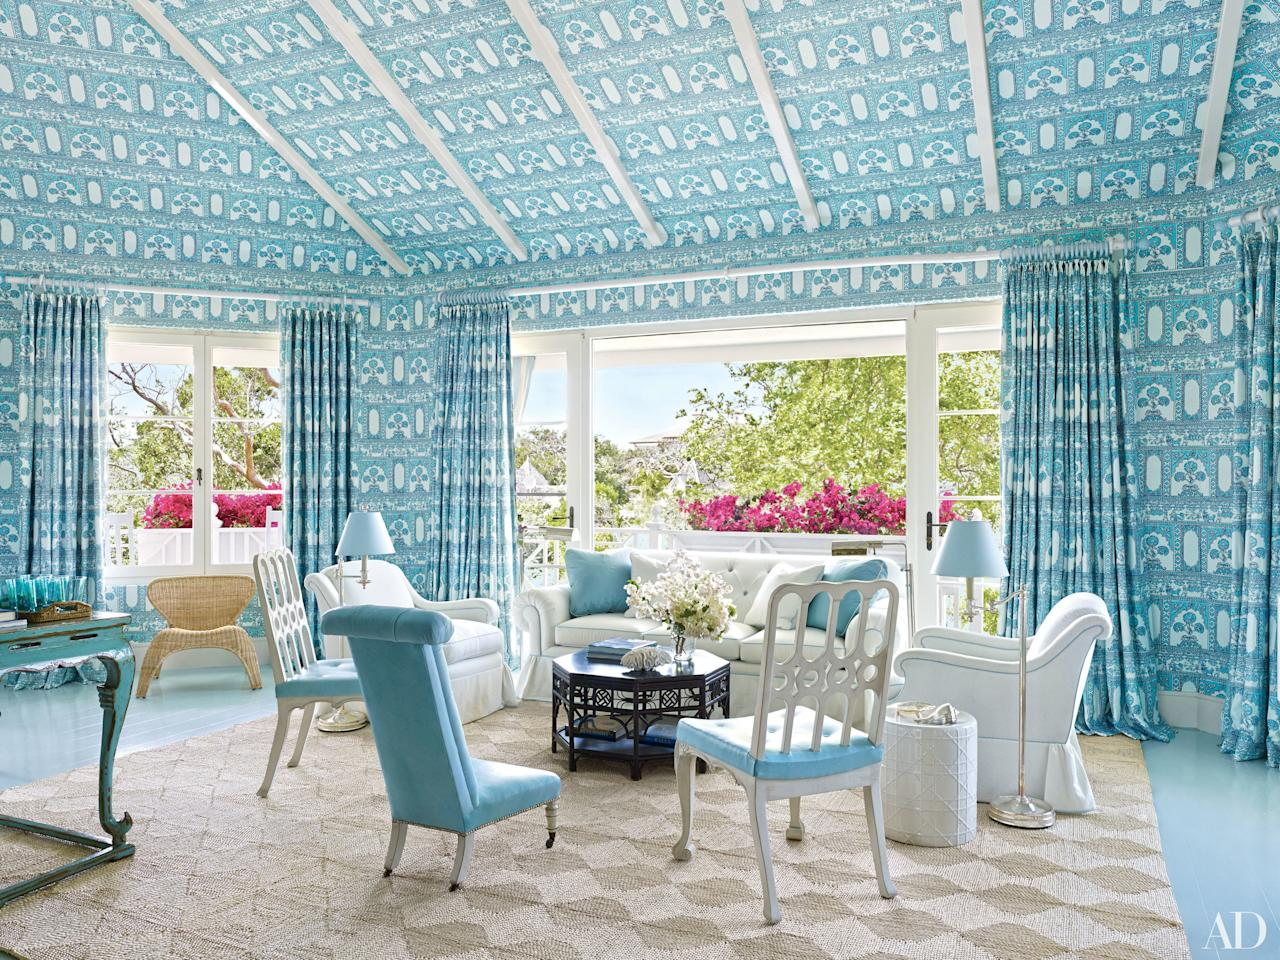 """New York designer Miles Redd recast the interiors of a Texas family's <a rel=""""nofollow"""" href=""""http://www.architecturaldigest.com/story/miles-redd-bahamas-beach-vacation-home-article?mbid=synd_yahoo_rss"""">vacation house at the Lyford Cay club in the Bahamas</a>. The living room walls and ceiling are covered in a China Seas fabric, with curtains to match. The sofa is by Oscar de la Renta Home for Century Furniture, and the antique slipper chair is clad in a blue Global Leathers hide."""